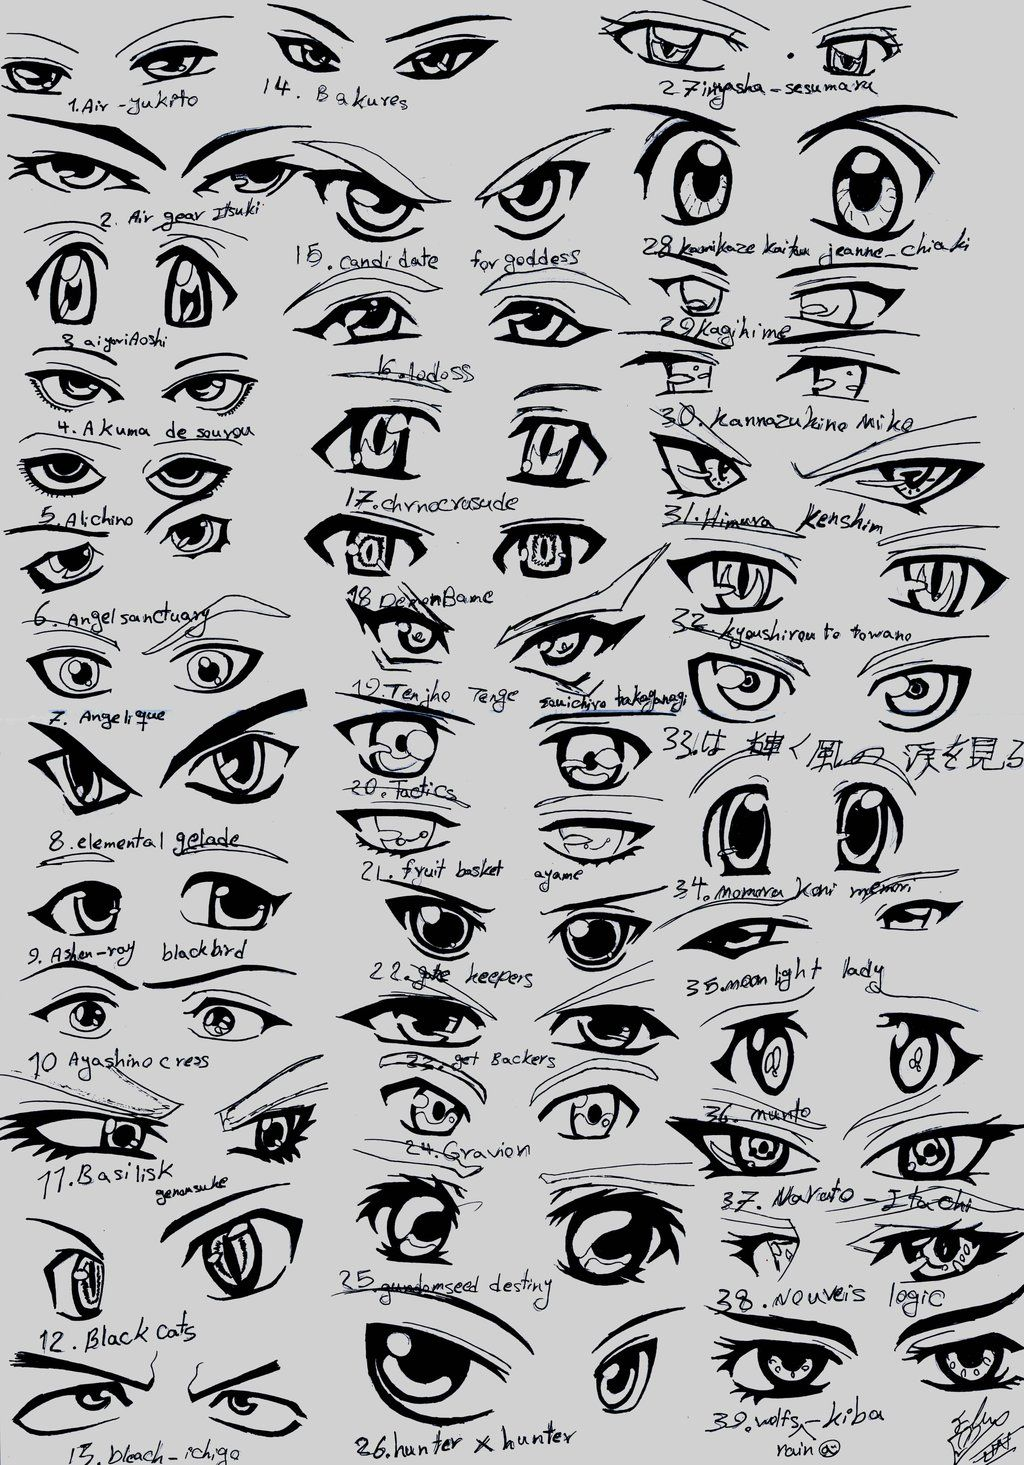 How to Draw Anime Eyes for Beginners - Art by Ro